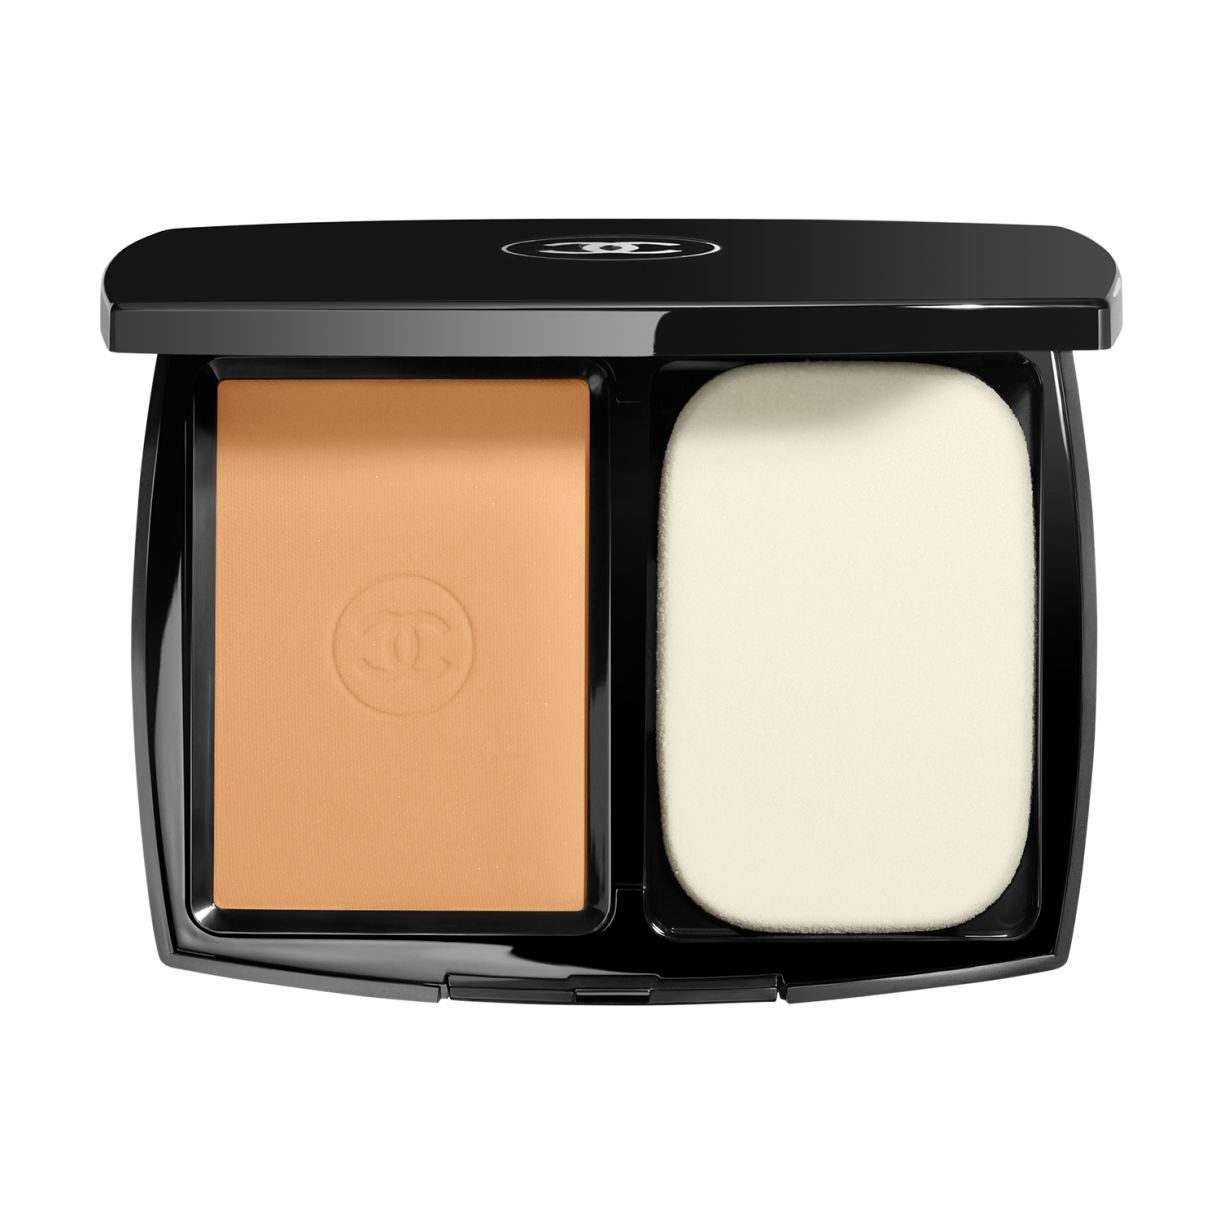 LE TEINT ULTRA TENUE ULTRAWEAR FLAWLESS COMPACT FOUNDATION SPF 15